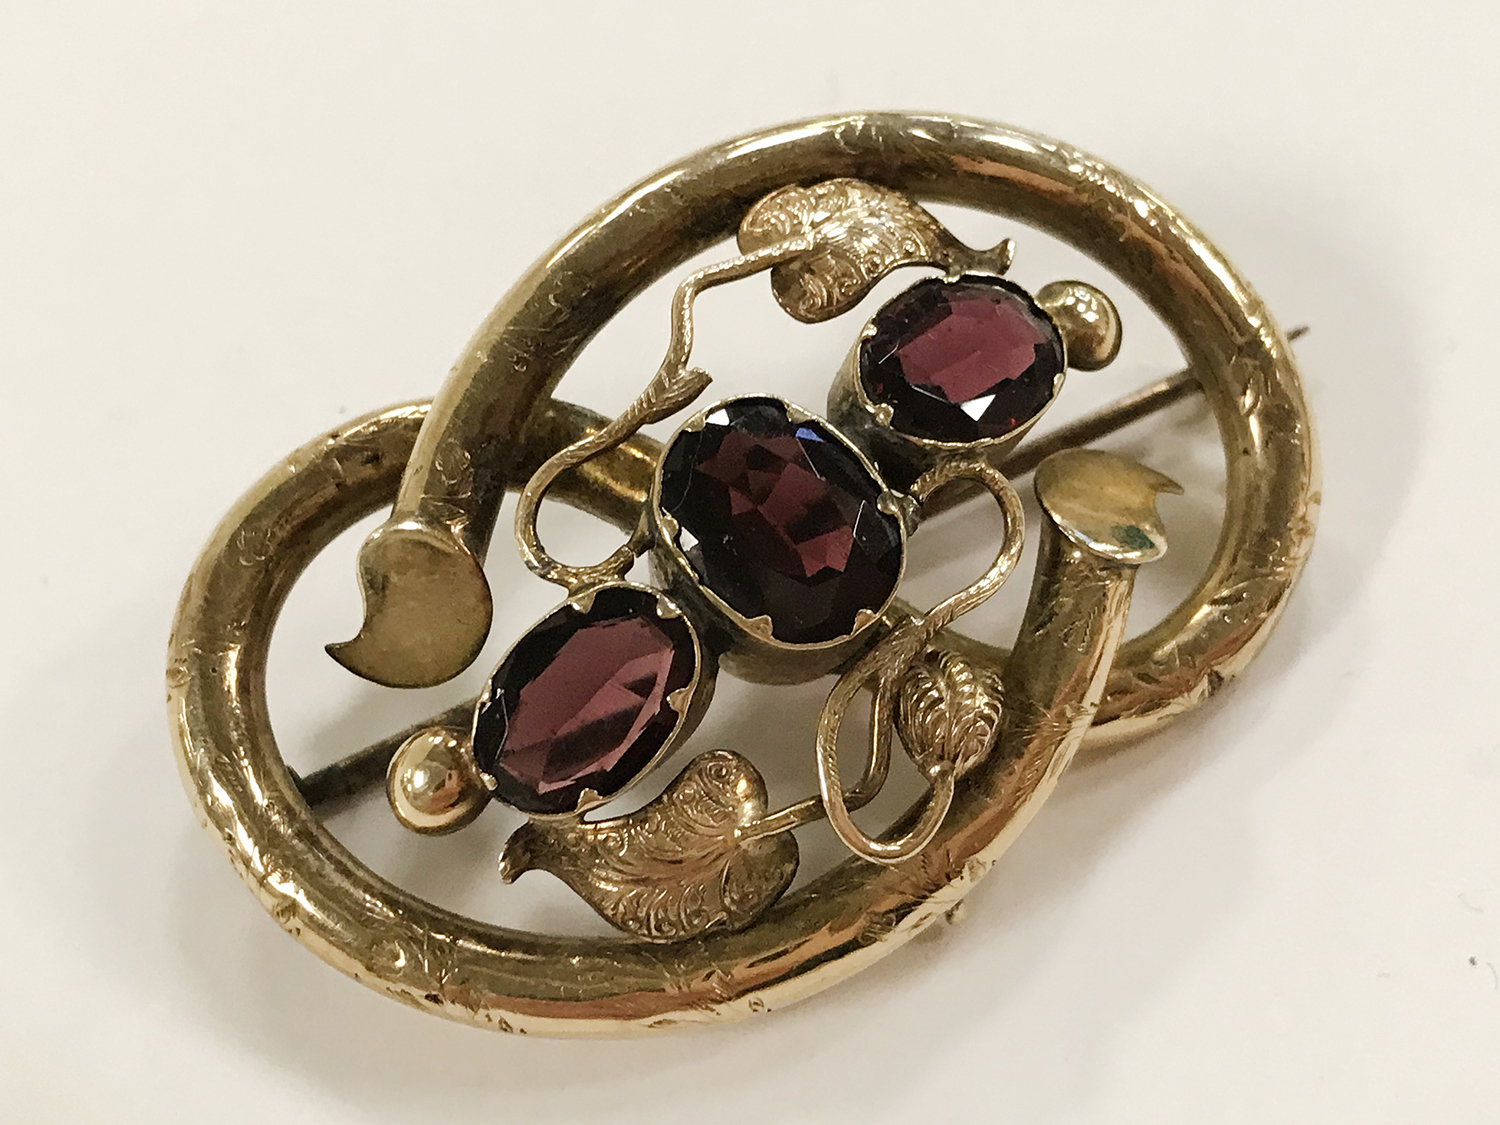 TWO ANTIQUE PIN BROOCHES - Image 3 of 5